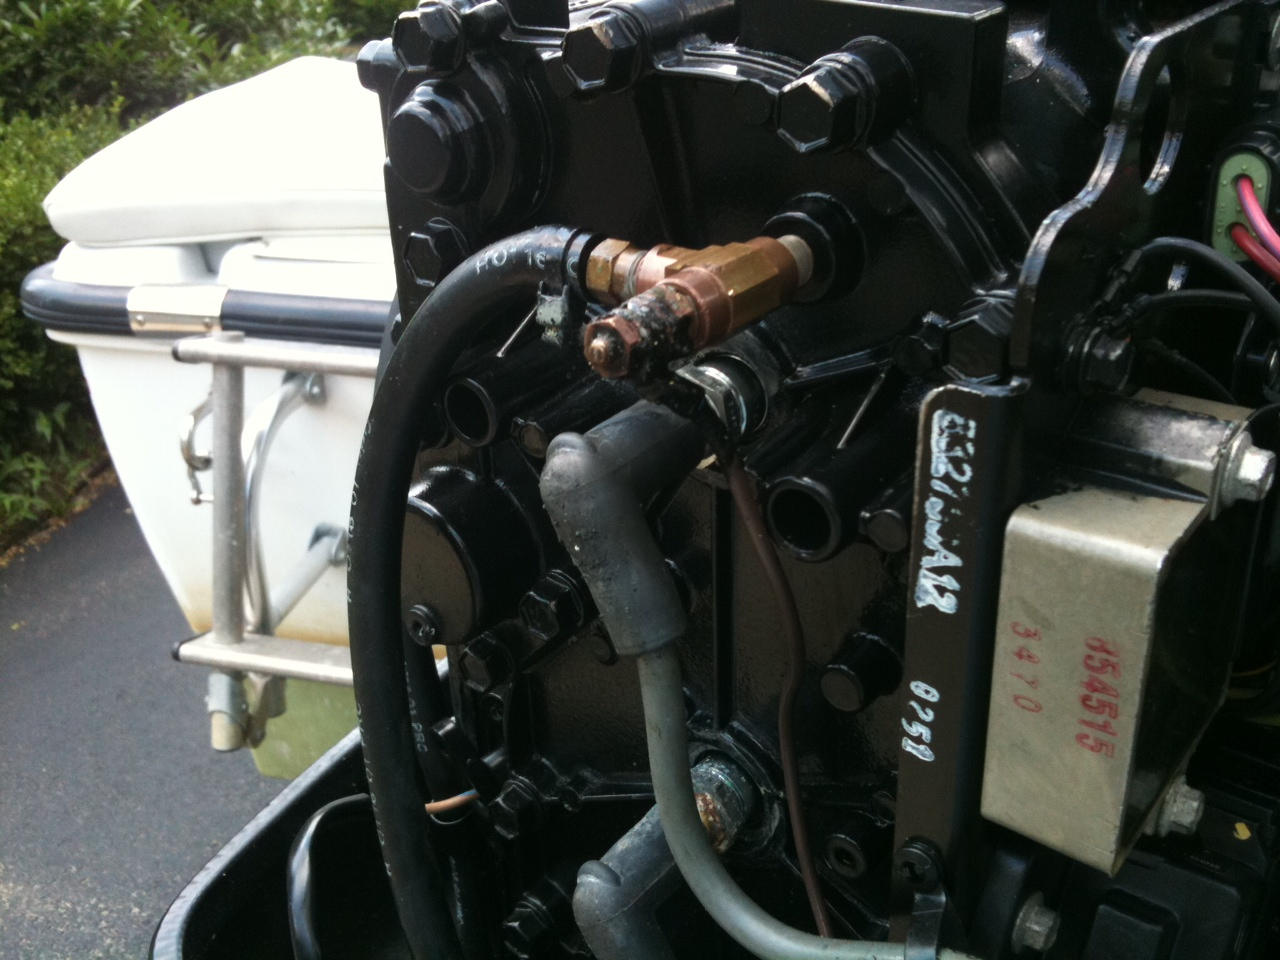 I have a 2001 mercury 90hp saltwater outboard, 3cyl, 2